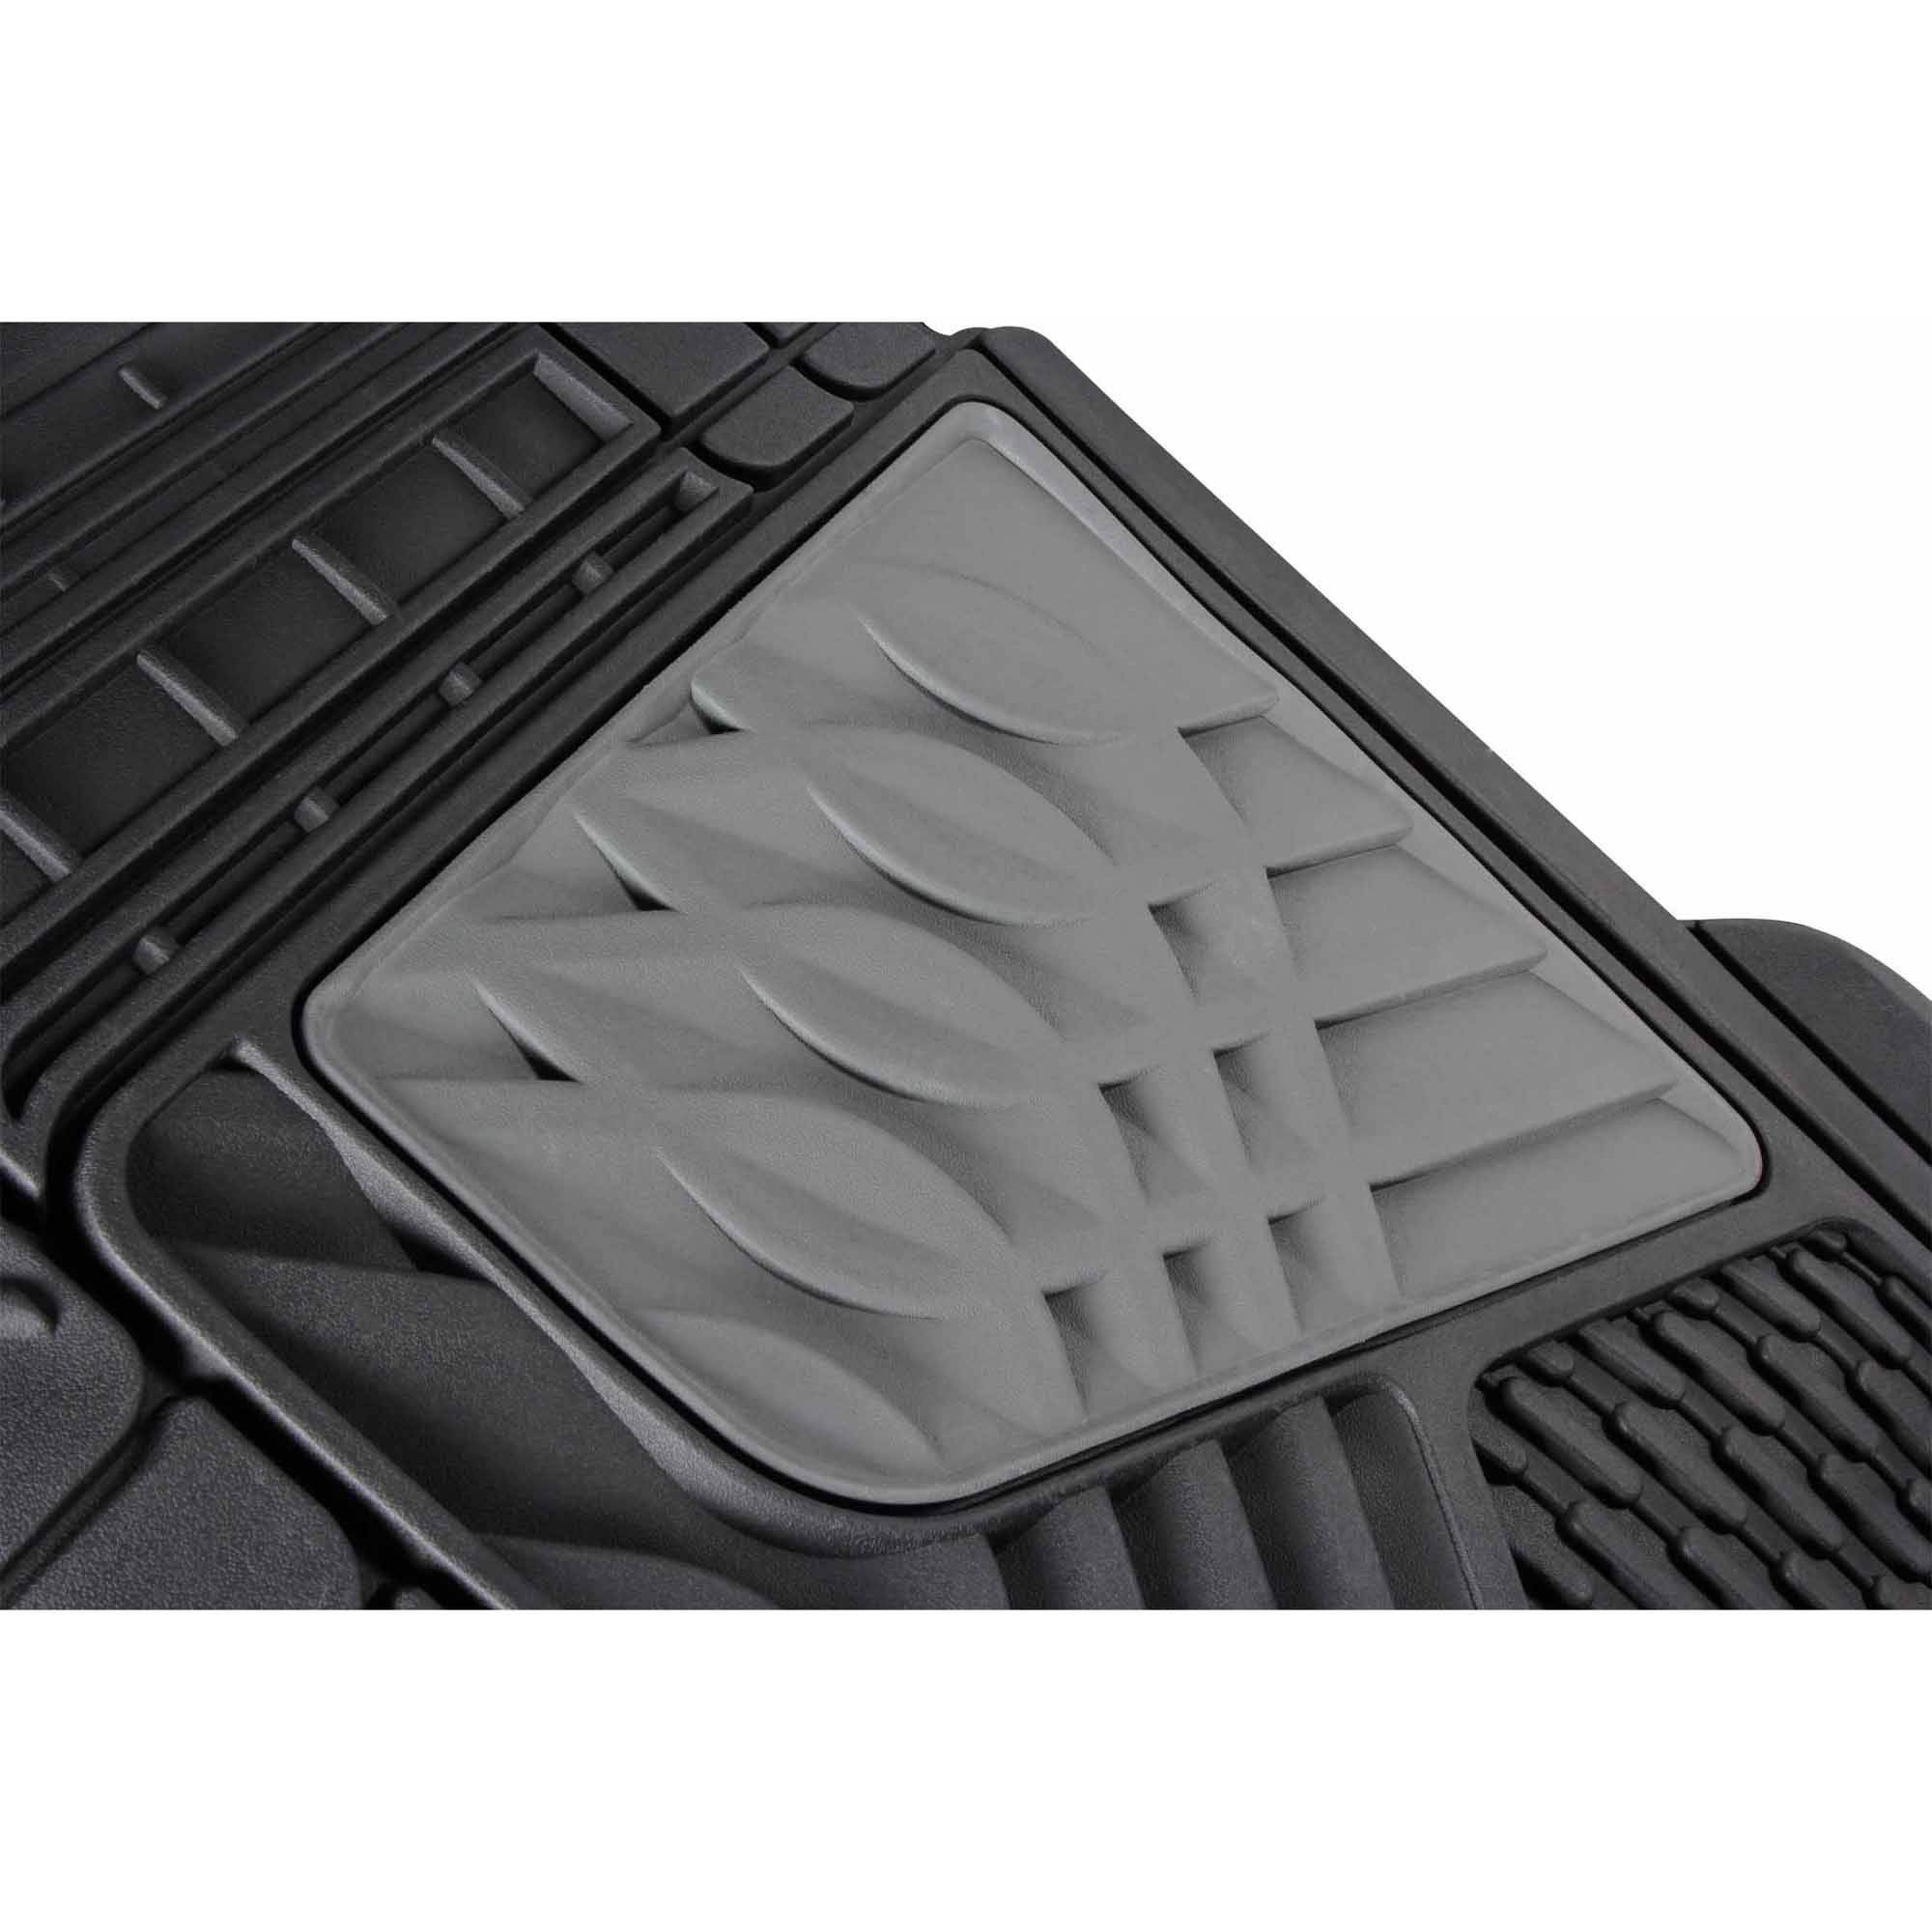 for r fit co floor green emerald all car auto weather sedan mats suv nongzi custom